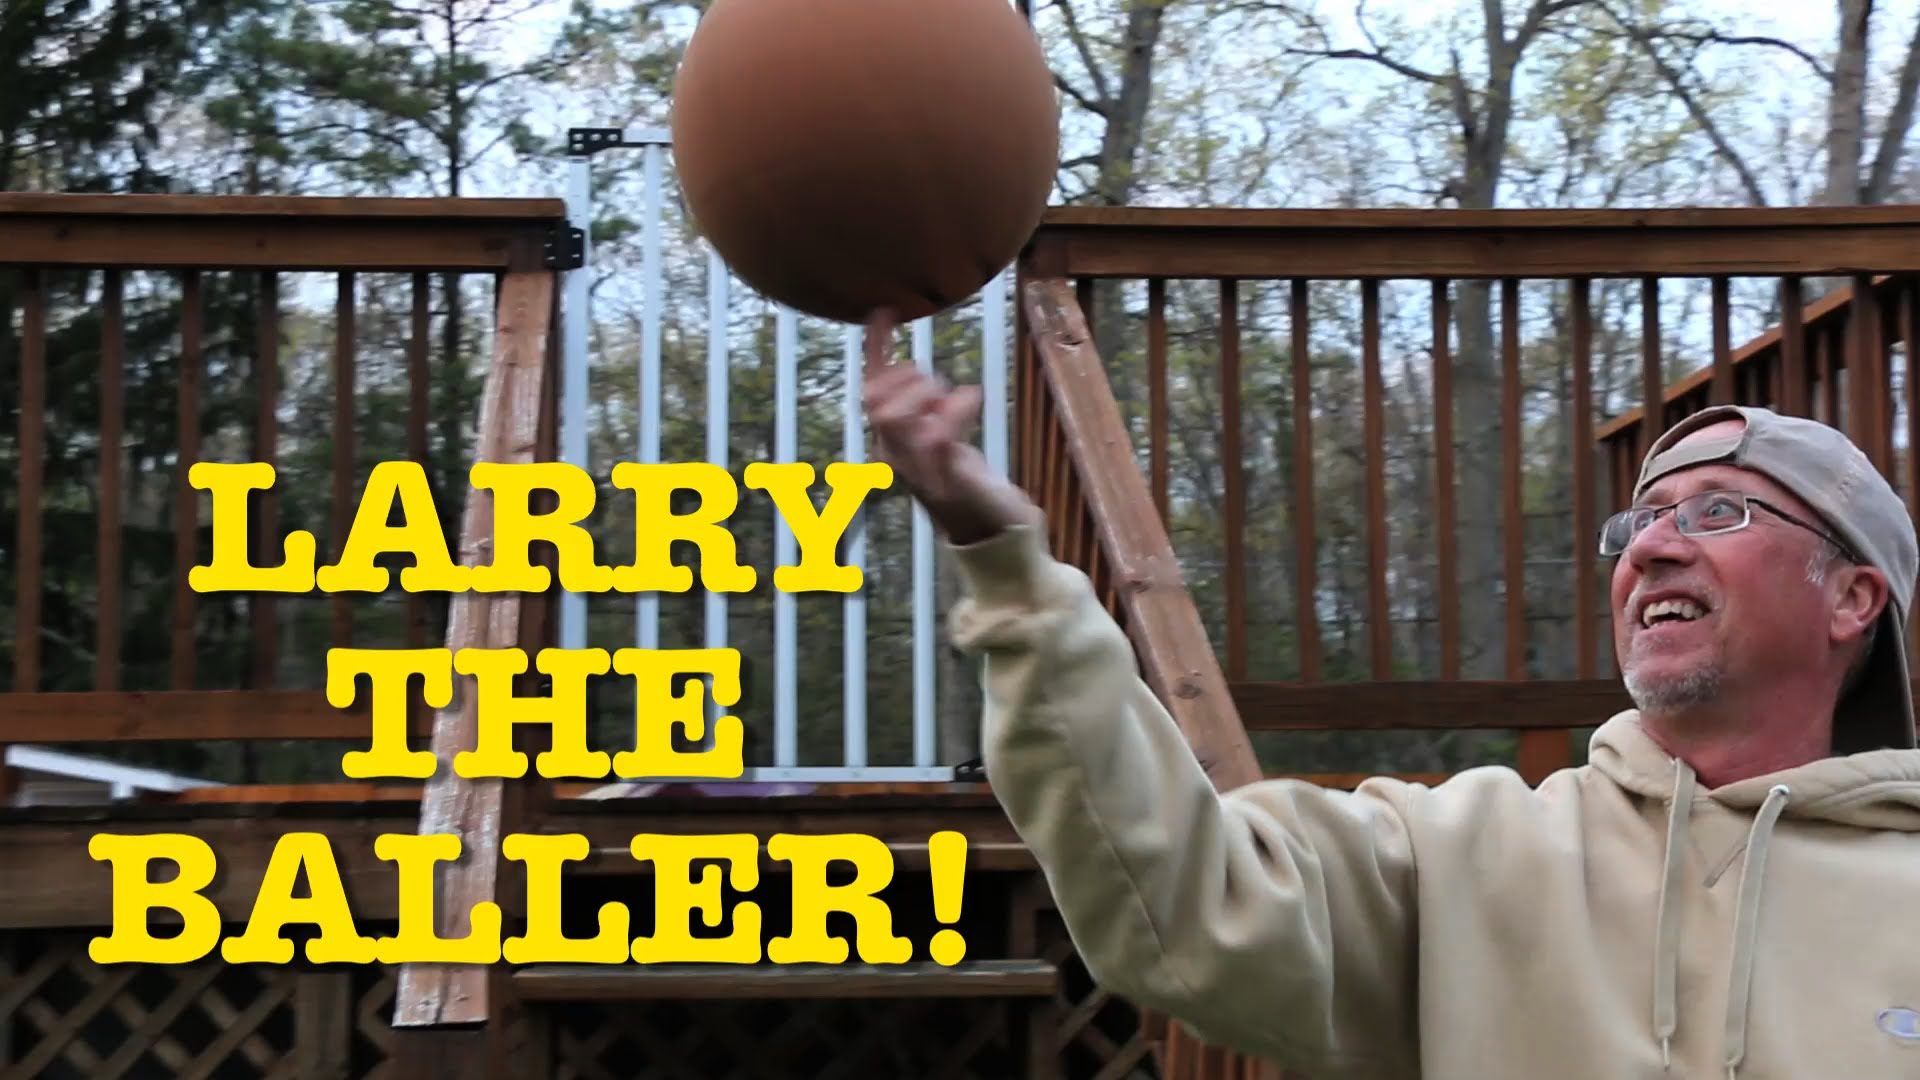 BASKETBALL AT UNCLE LARRY'S!